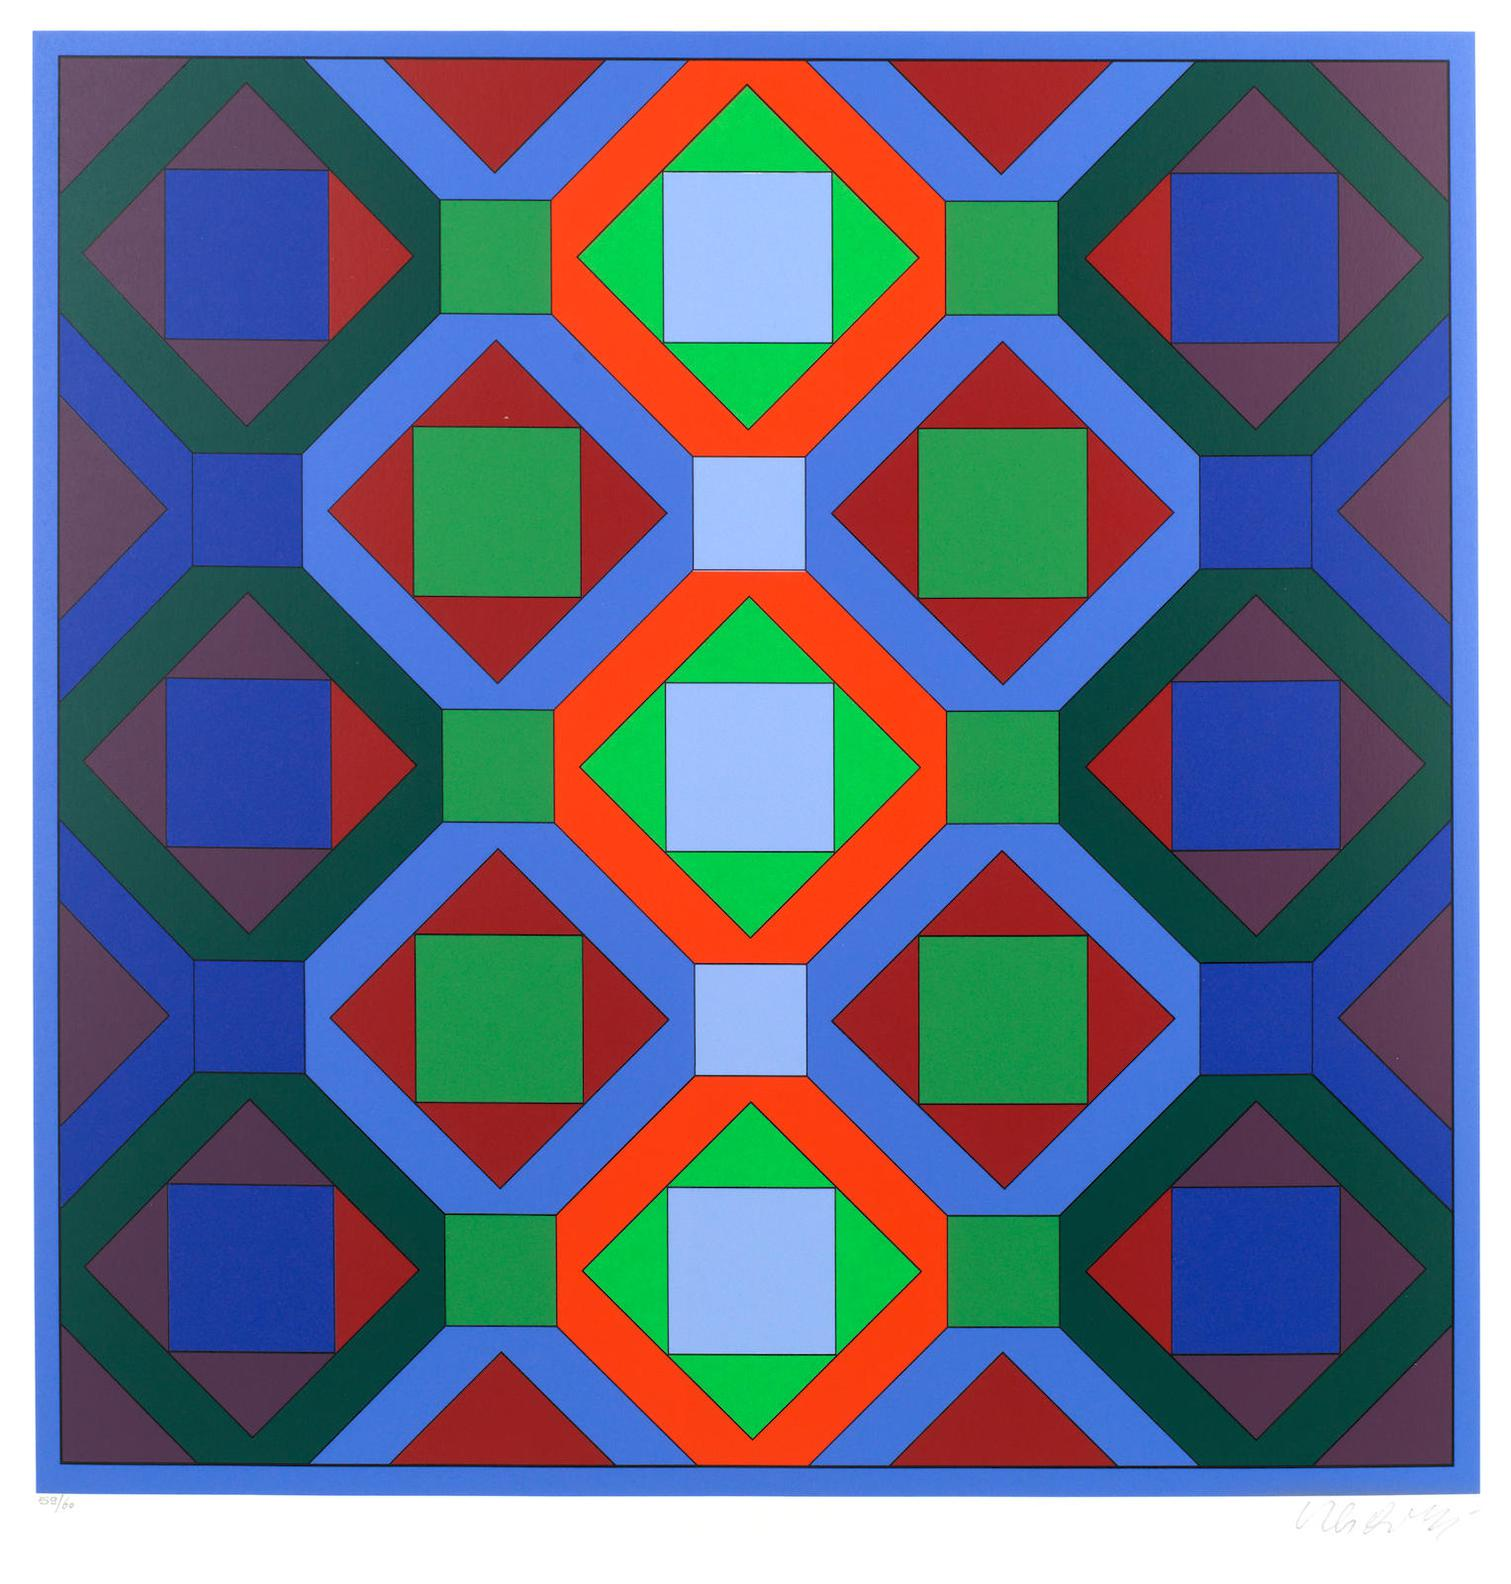 Victor Vasarely-Octagonal Structures-1969